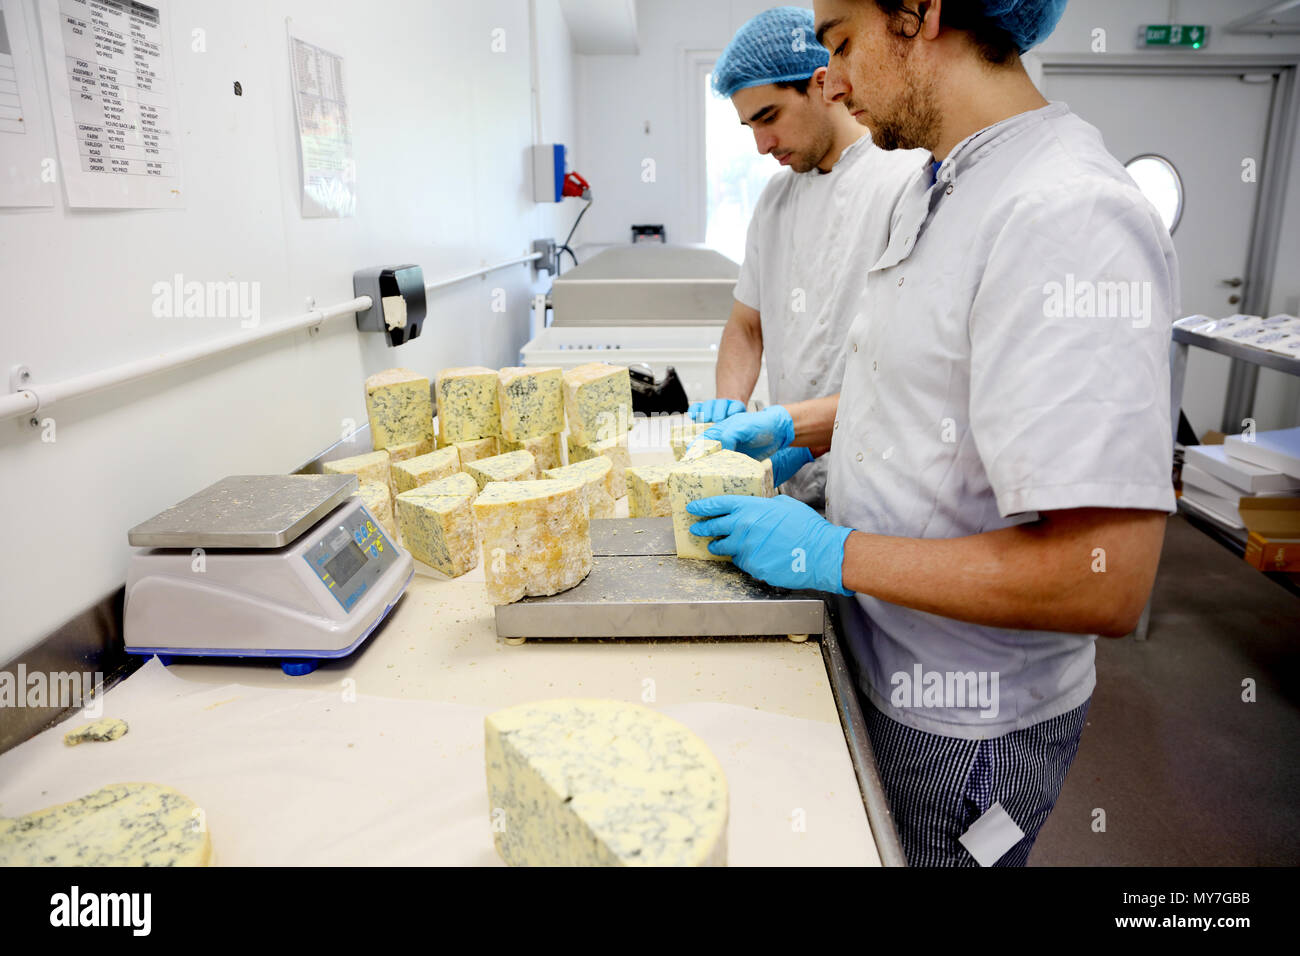 Cheese makers cutting blocks of blue stilton to package and send off to wholesalers - Stock Image